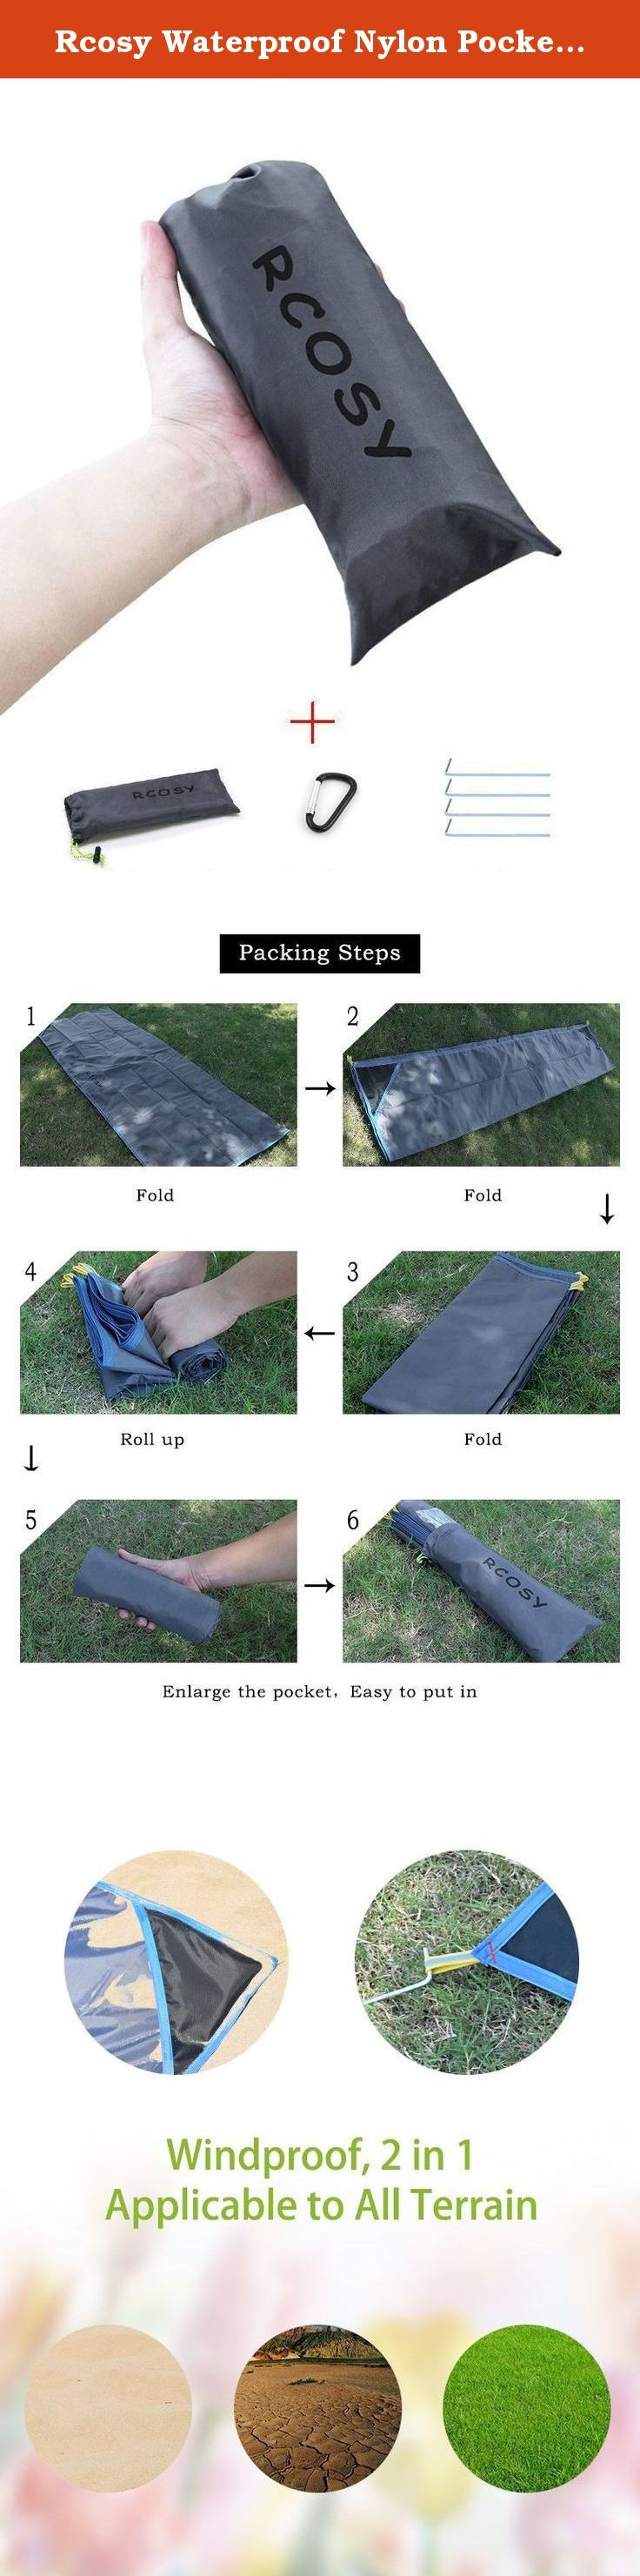 """Rcosy Waterproof Nylon Pocket Blankets with Carabiner, 79 X 59-Inch. ========== Product Description ========== Details: Materials: This Beach Blanket is made of 100% lightweight polyester. Hand wash with mild soap, then hang to dry. Size: 79"""" X 59"""". Our Beach Blankets fit 4 to 6 people sitting, or 2 lying down. Easy to maintain: You can throw this Pocket Beach Blanket into your bag, or just leave it in your car for those unexpected moments when you might need it. Pack: Our Lightweight..."""